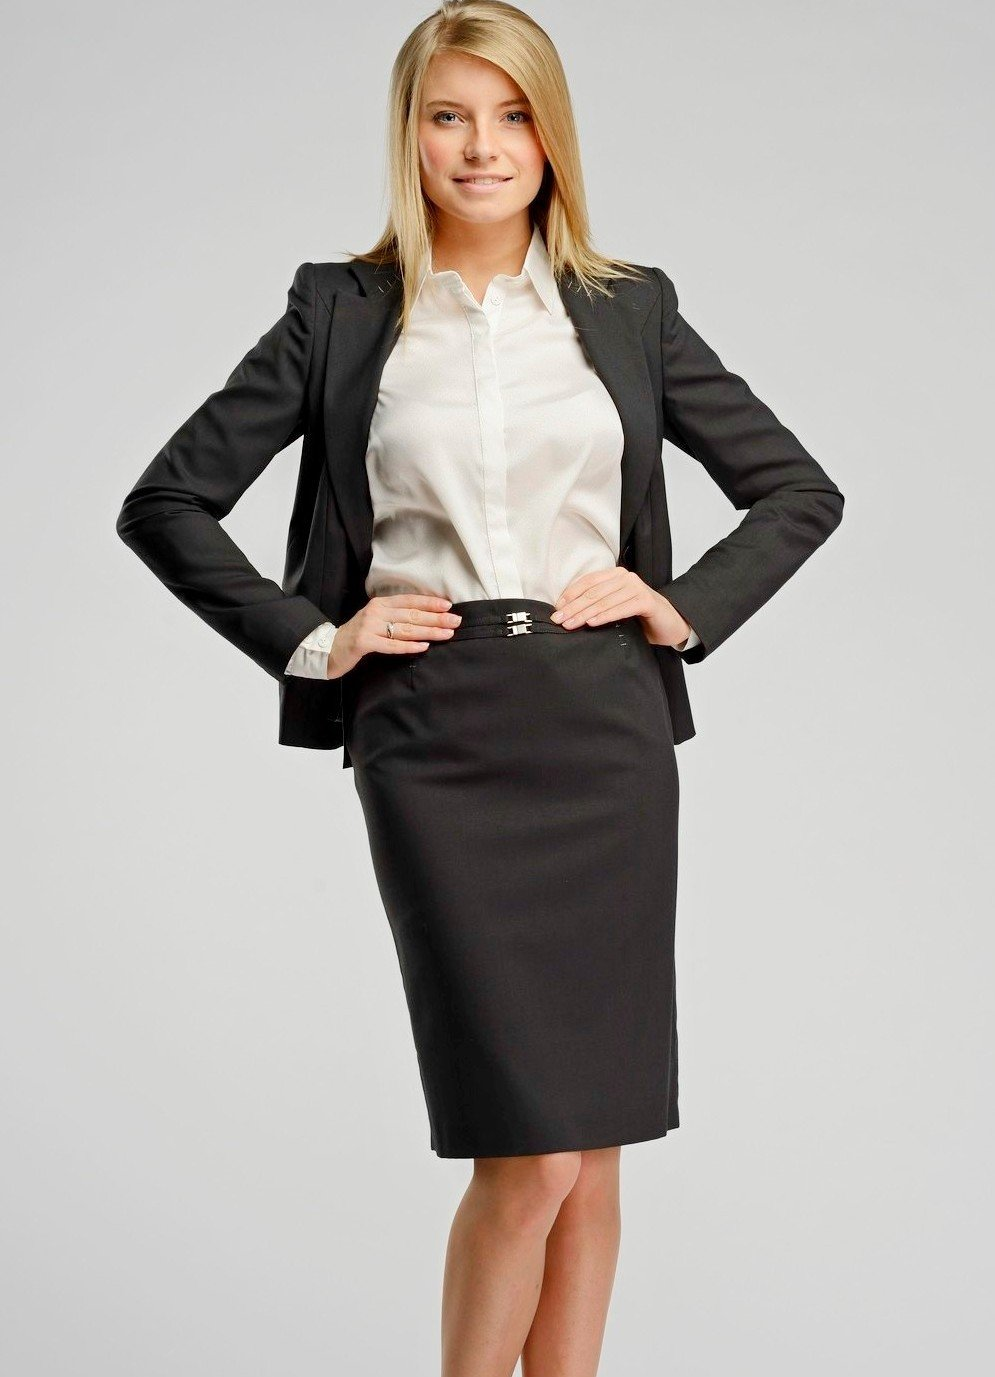 woman business formal